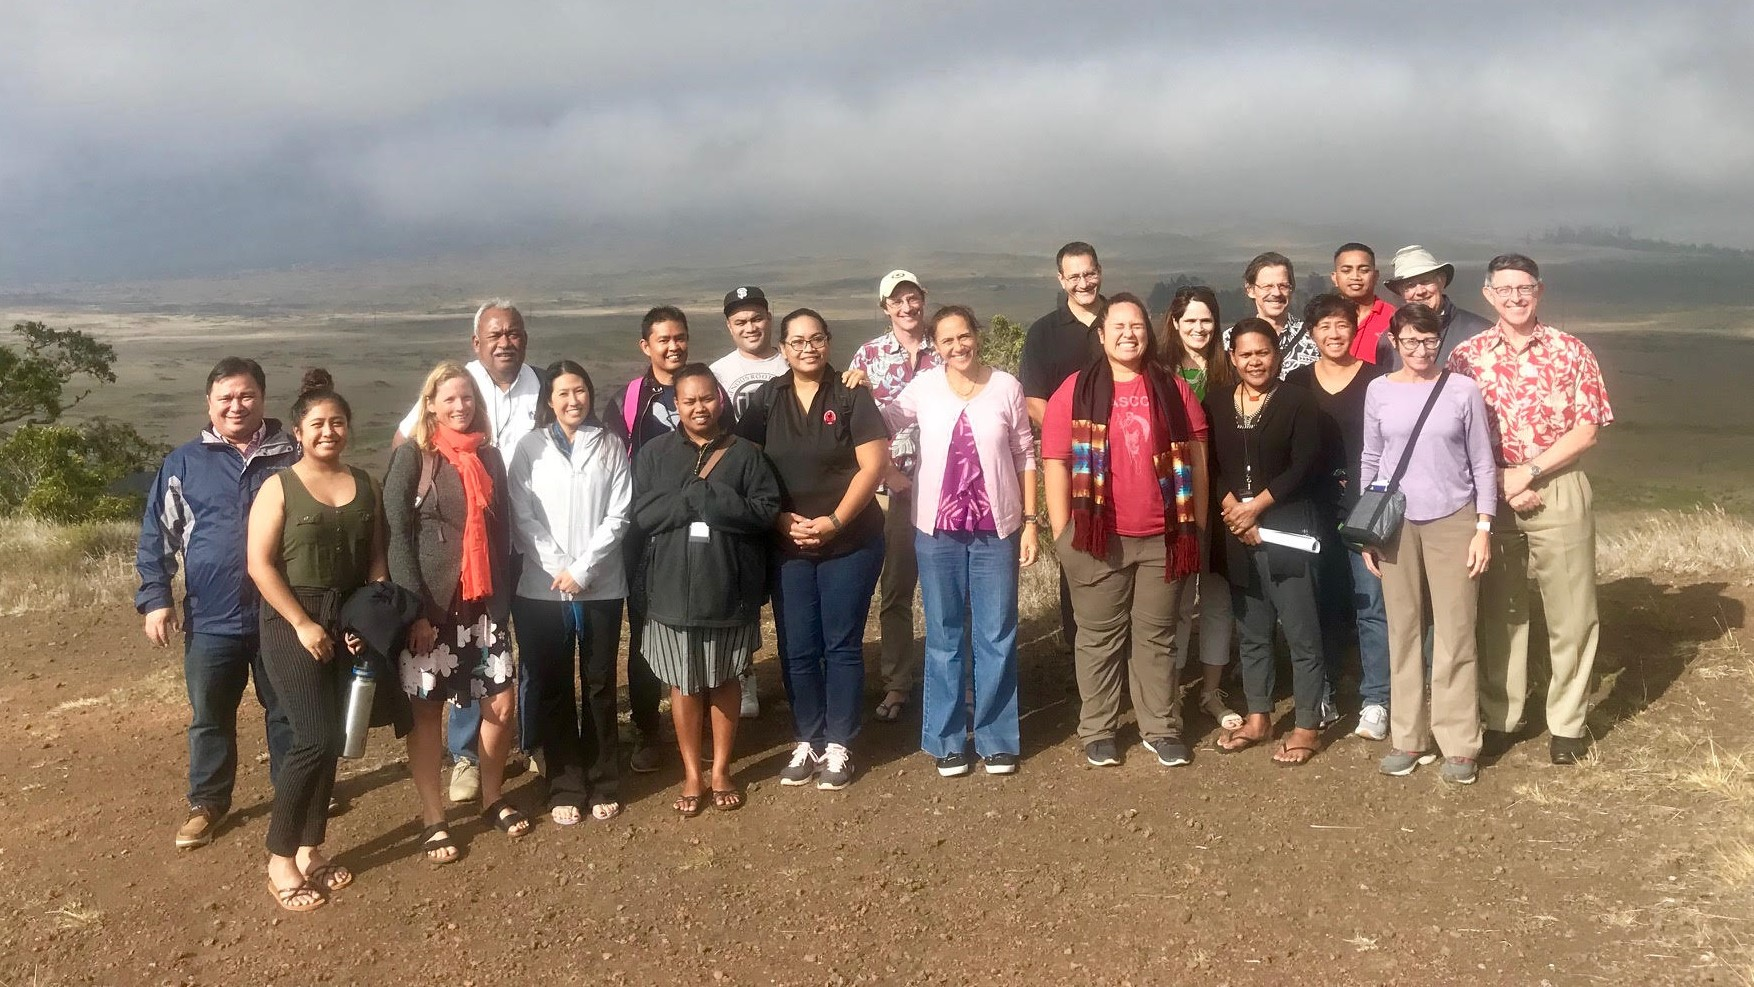 Group standing together with Hawai'i Island vista landscape in background.